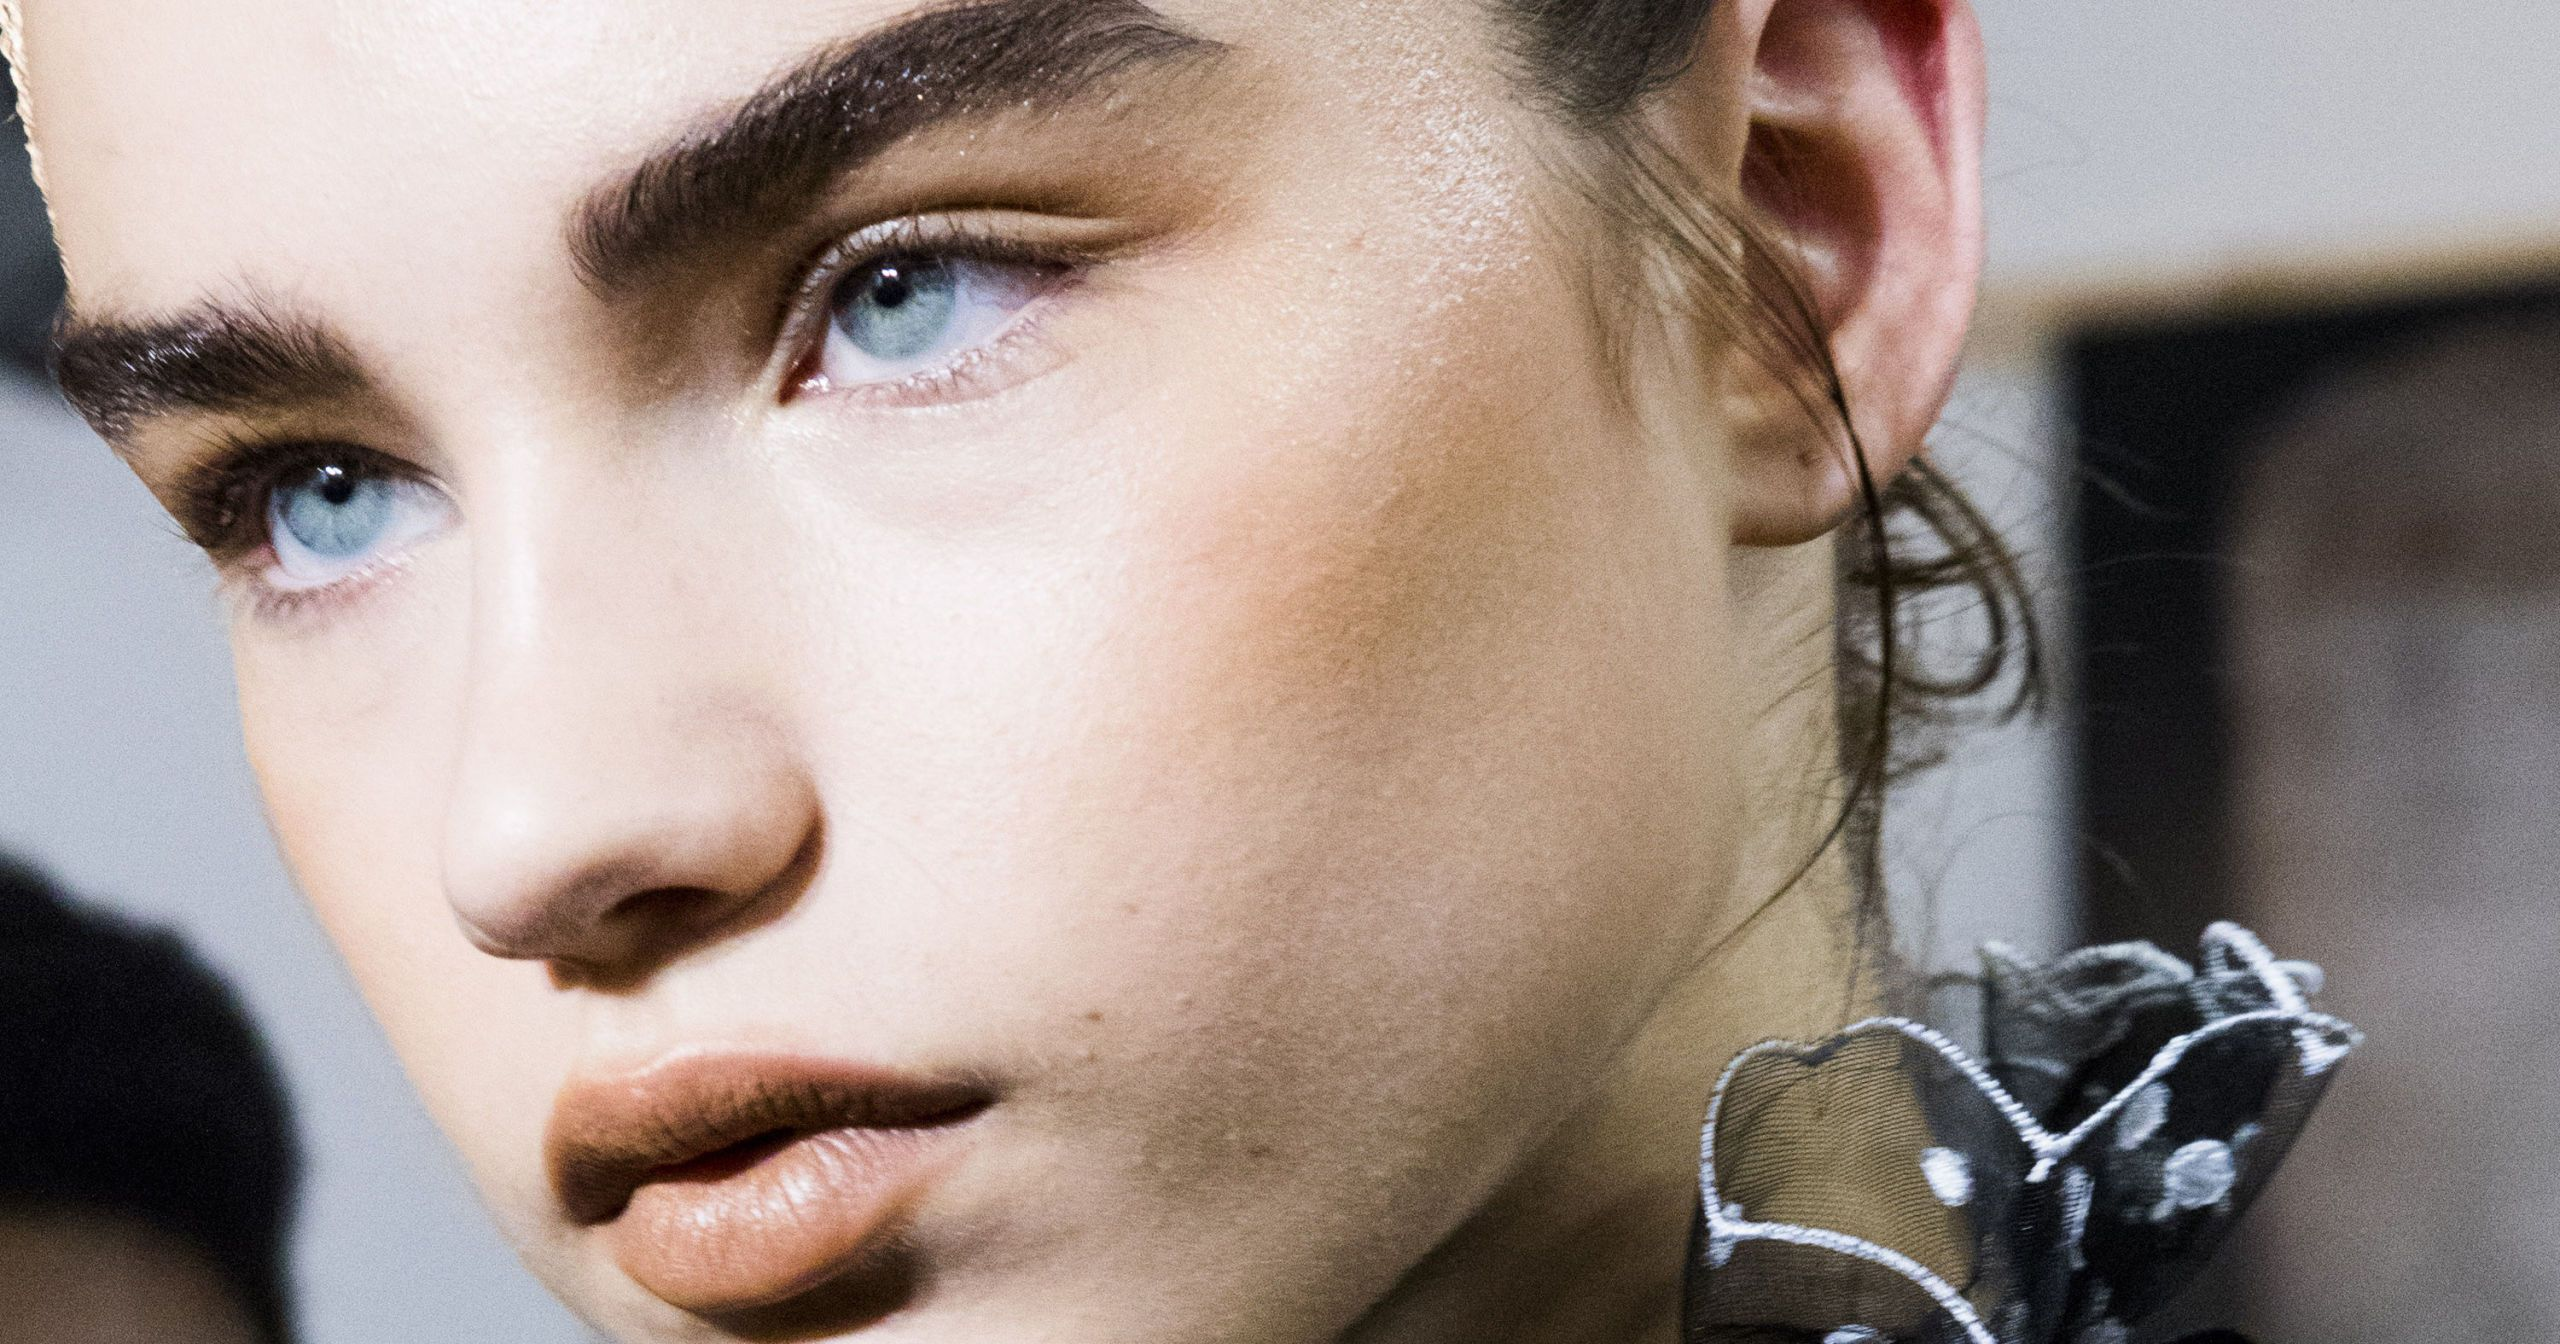 Nanoblading Promises The Instagram-Worthy Brows You've Always Wanted